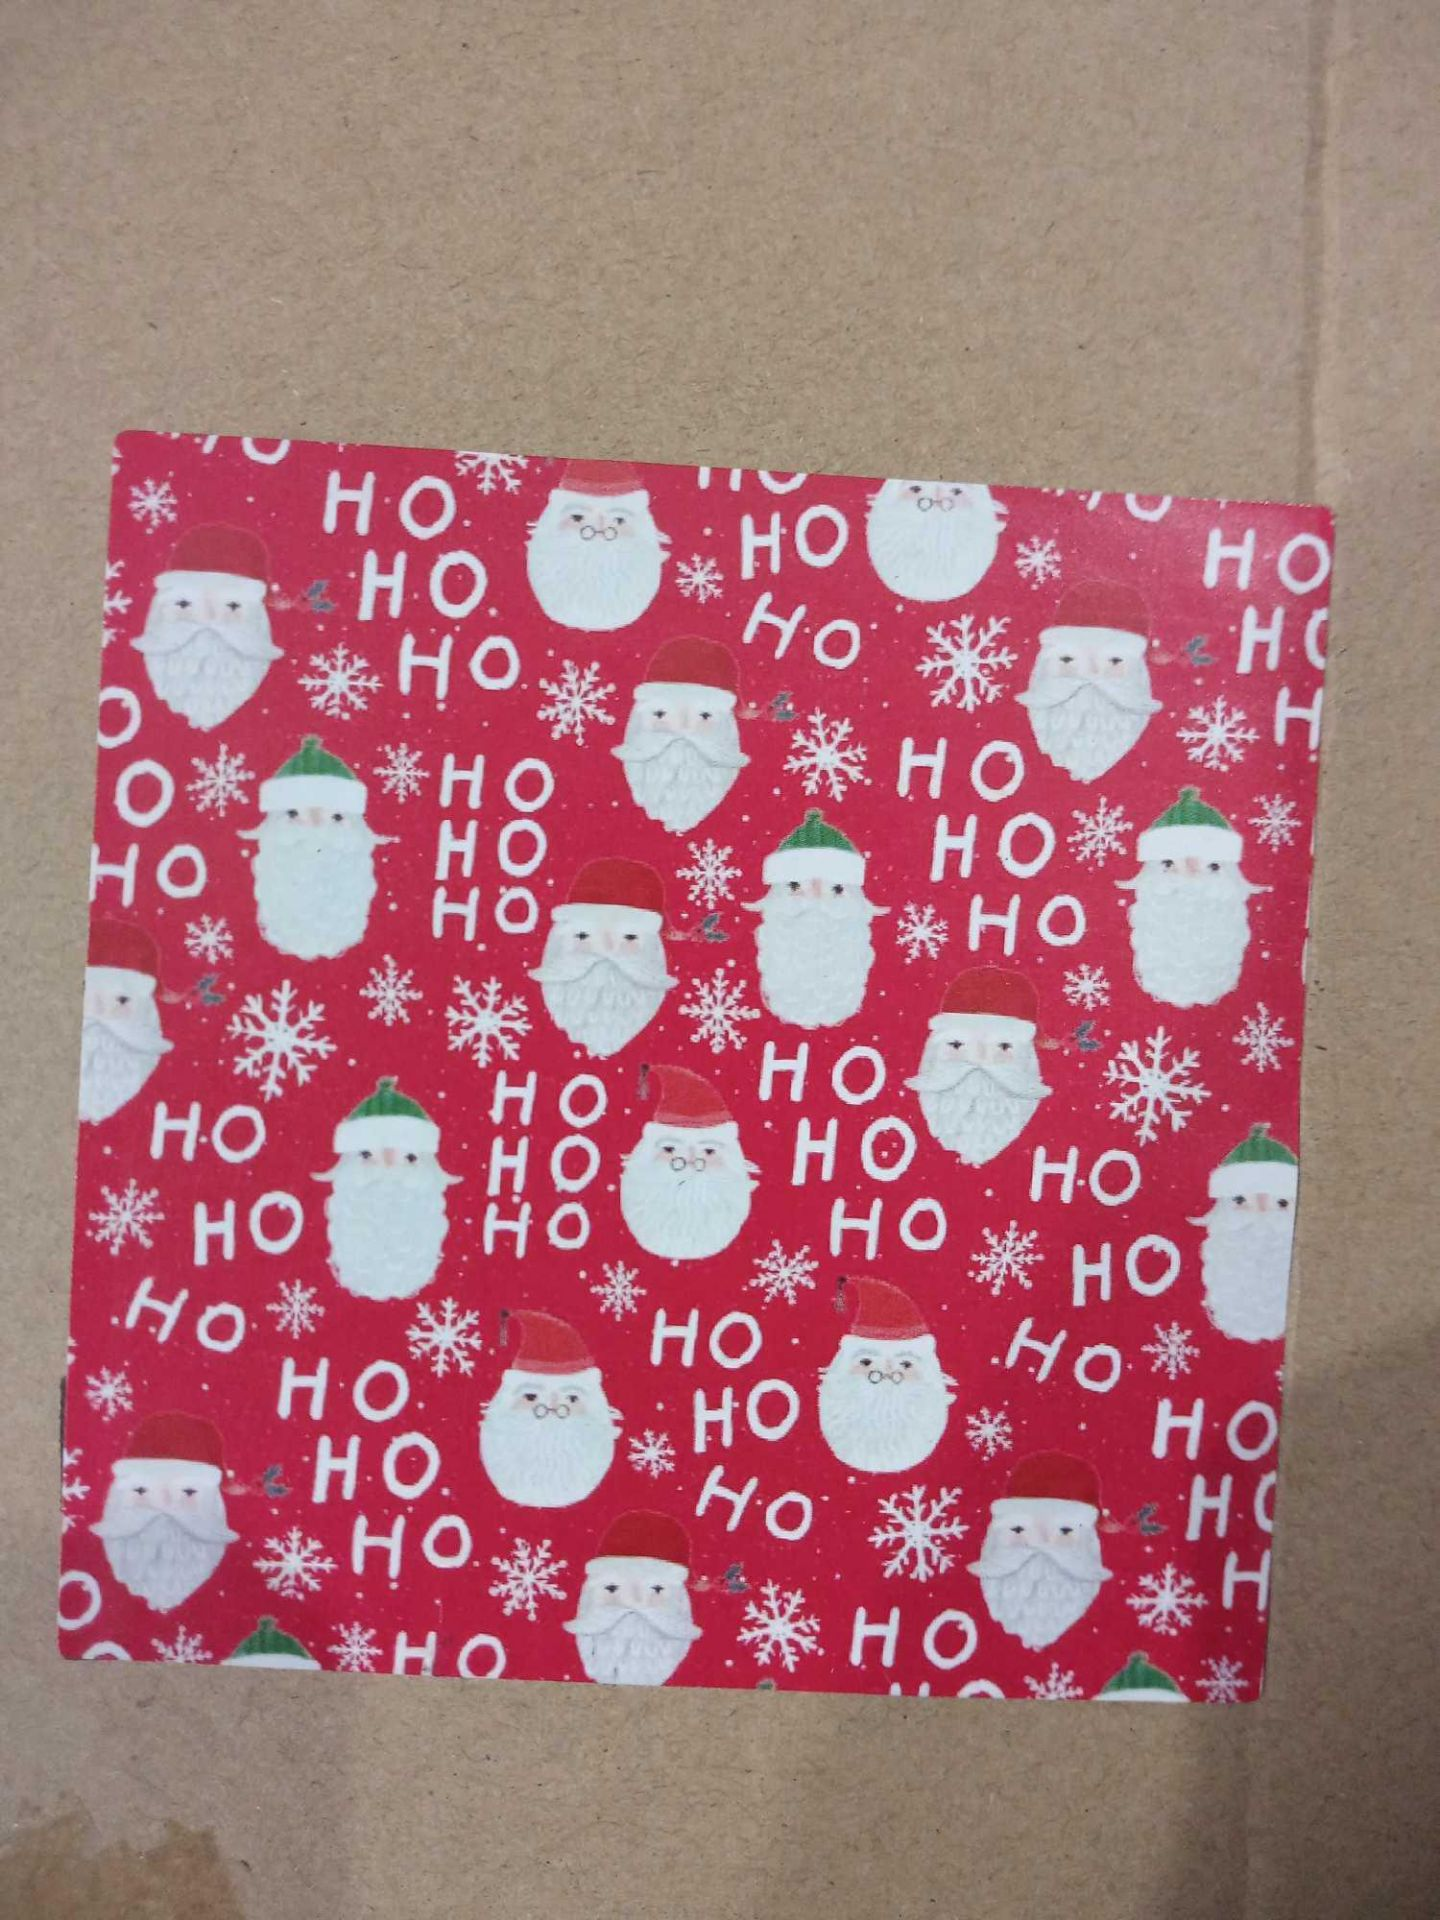 RRP £36 Box To Contain 36 Rolls Of 4M Santa Ho Ho Roll Wrap